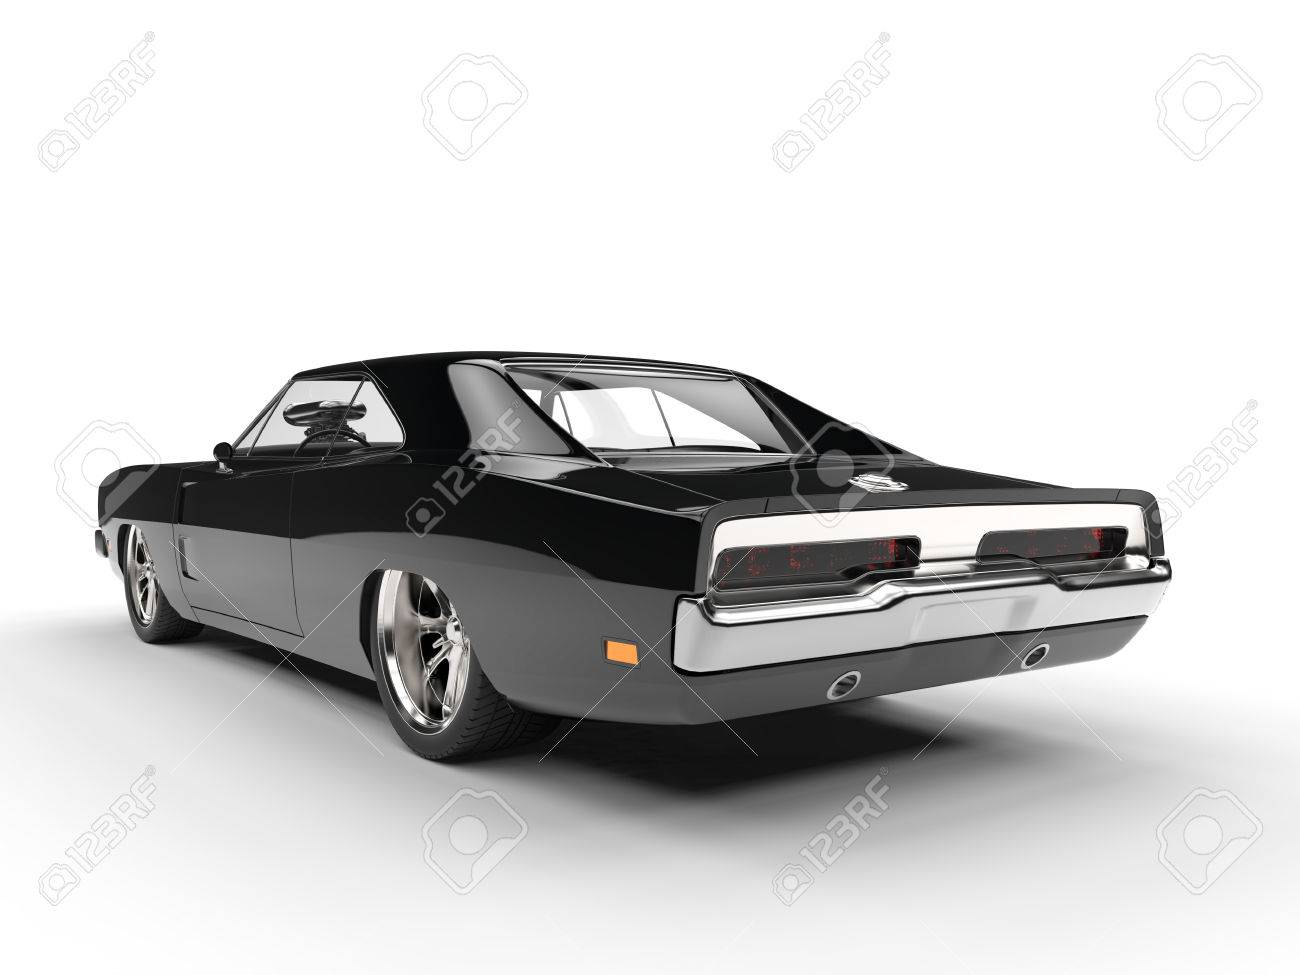 Black Muscle Car Rear View Stock Photo Picture And Royalty Free